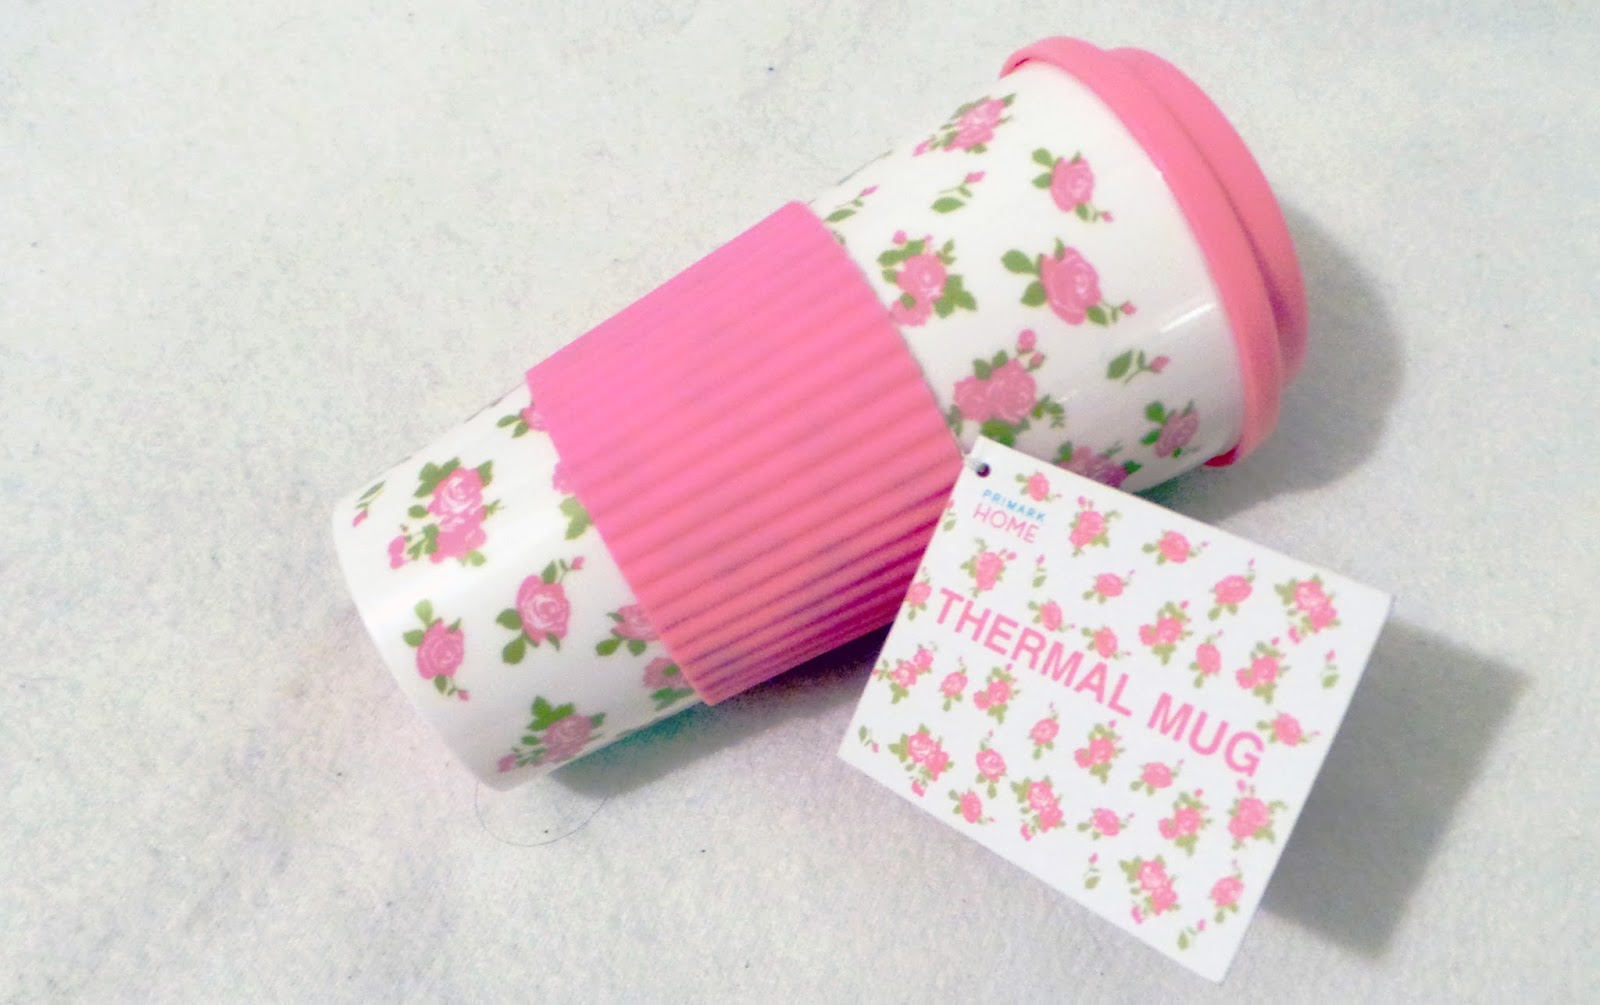 birthday haul blog post - Primark Pretty Floral Thermal Mug